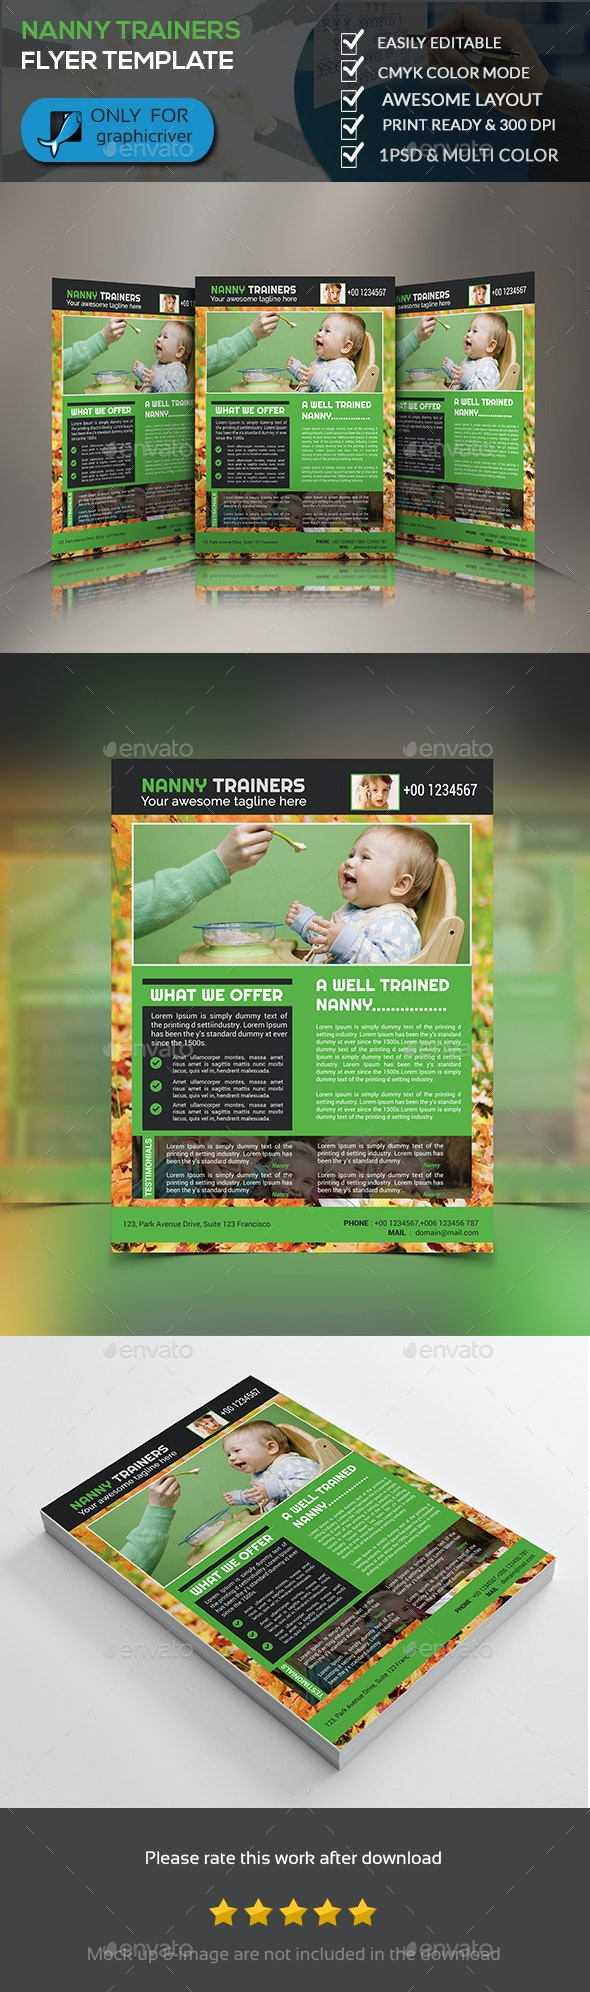 Nanny Trainer Flyer Template - Flyers Print Templates